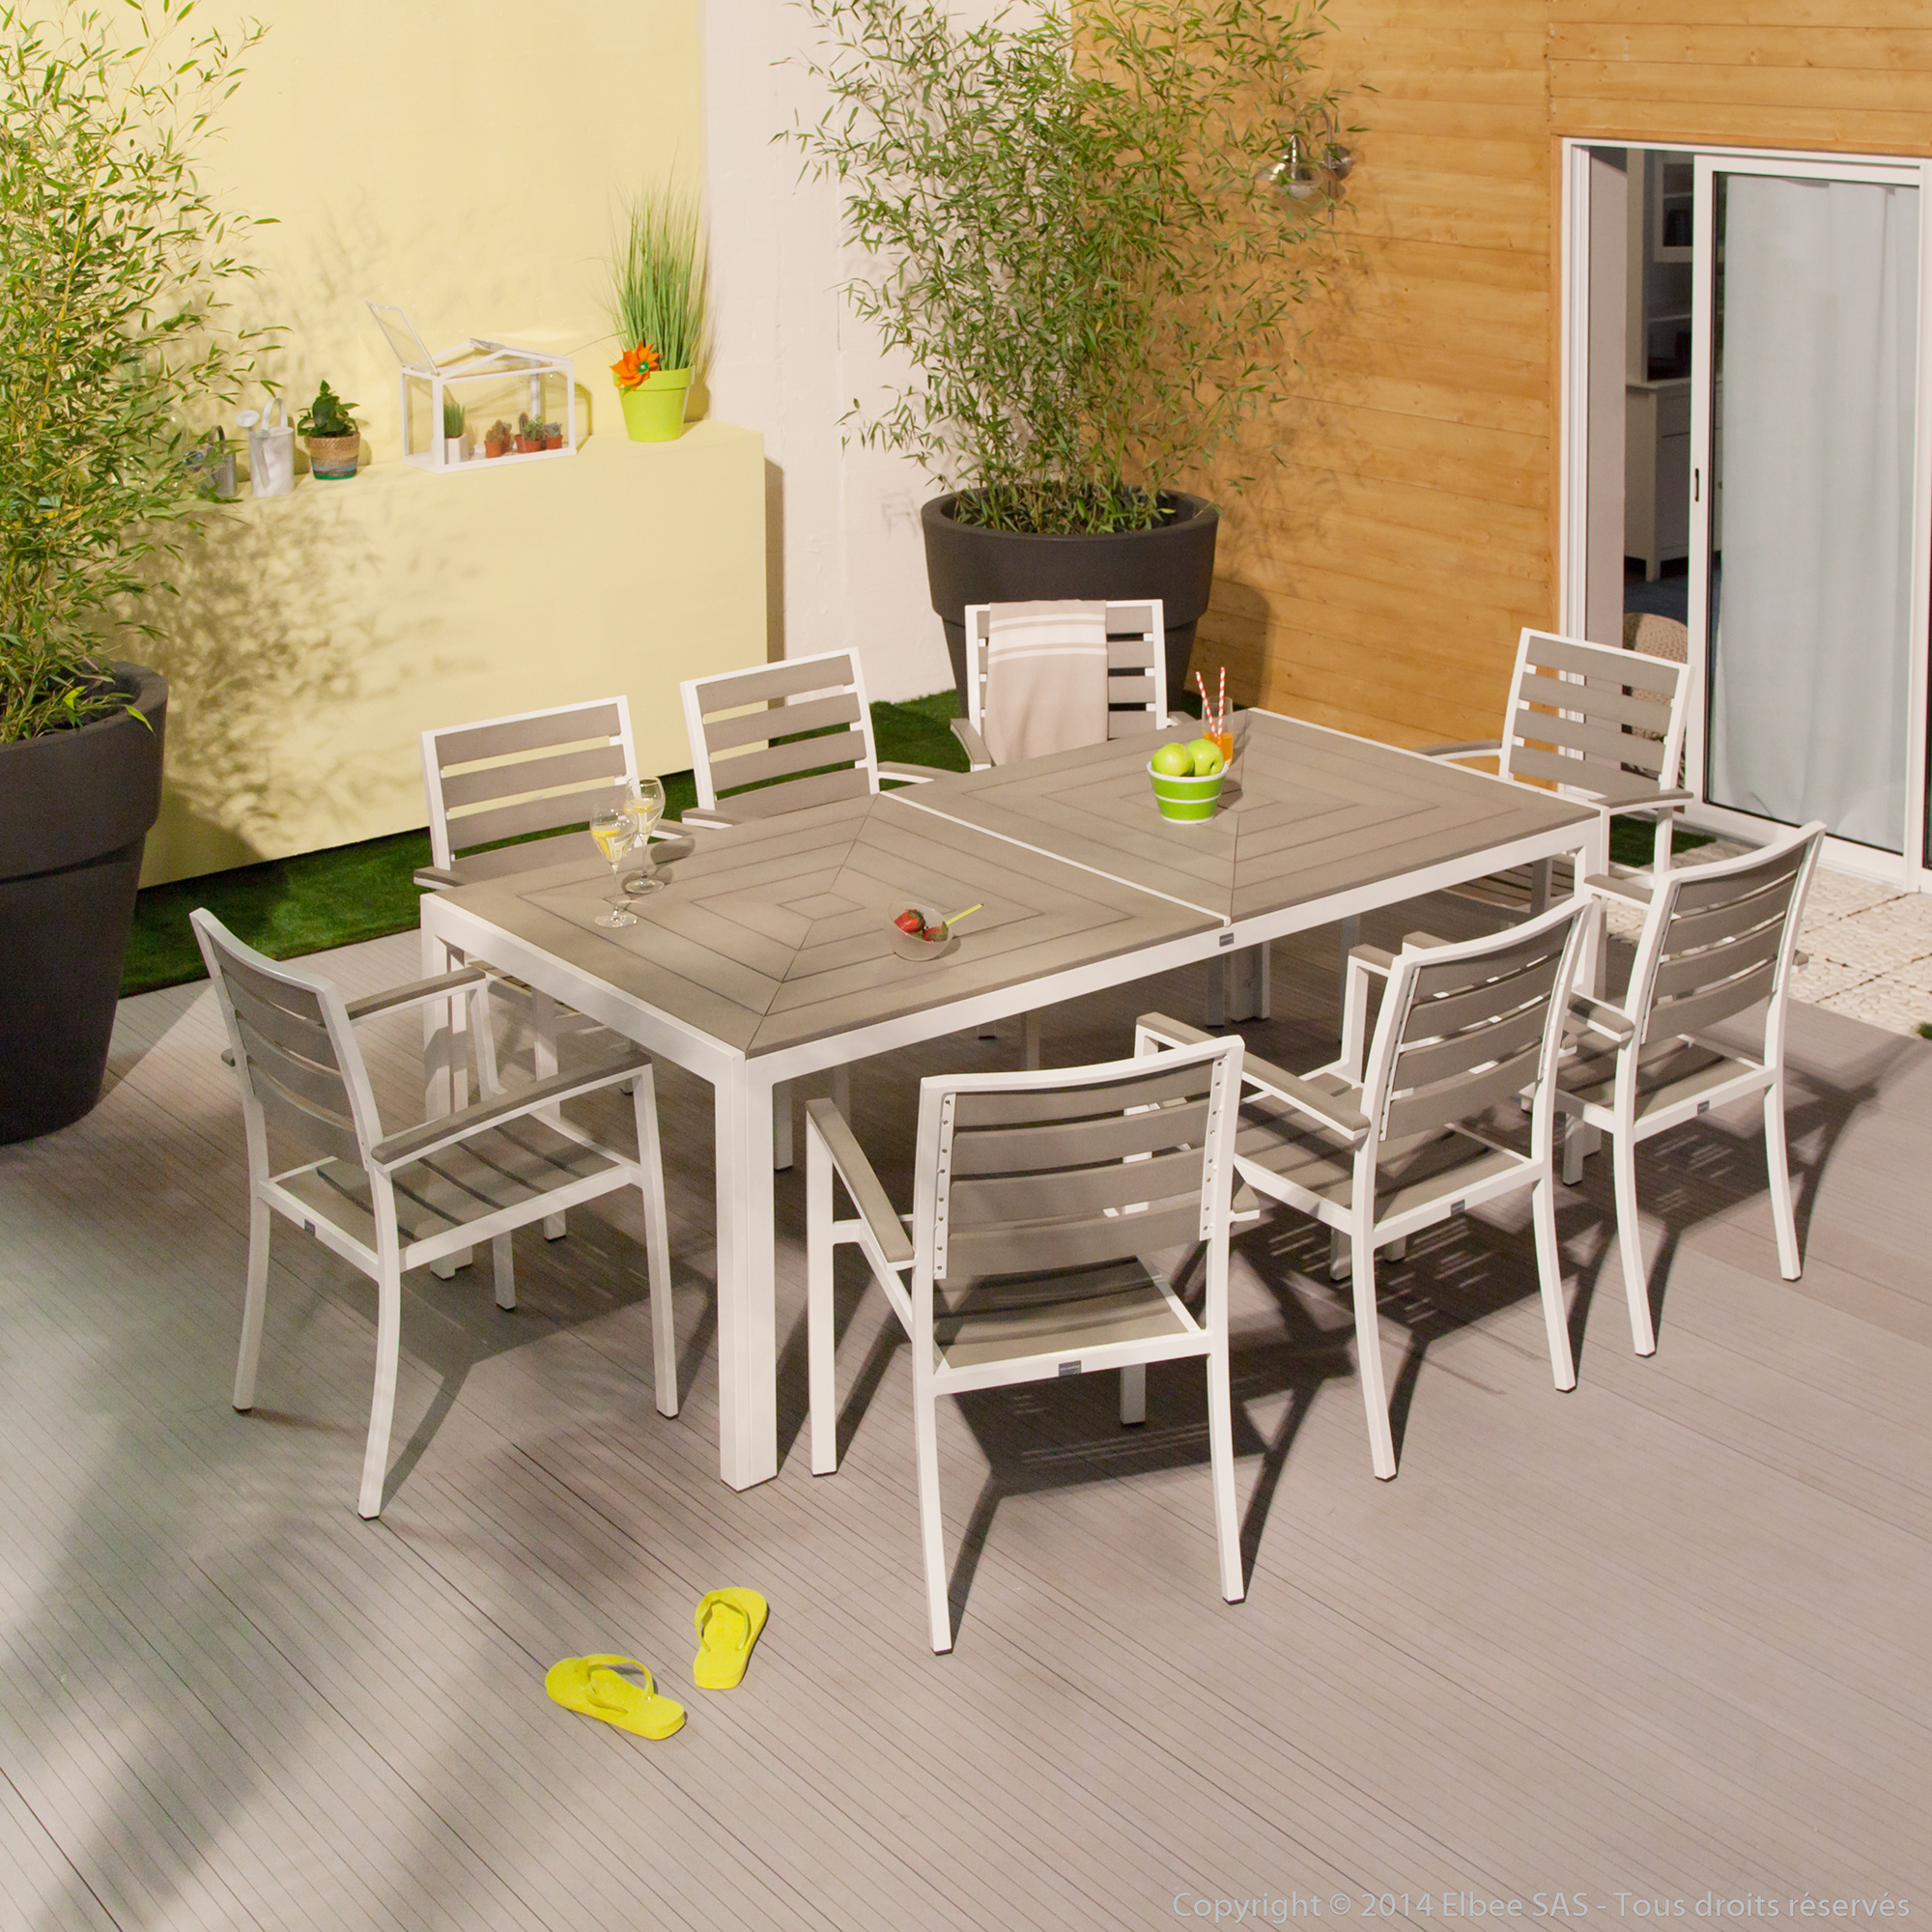 Salon de jardin 8 places alu bois composite brooklyn for Salon de jardin 8 places